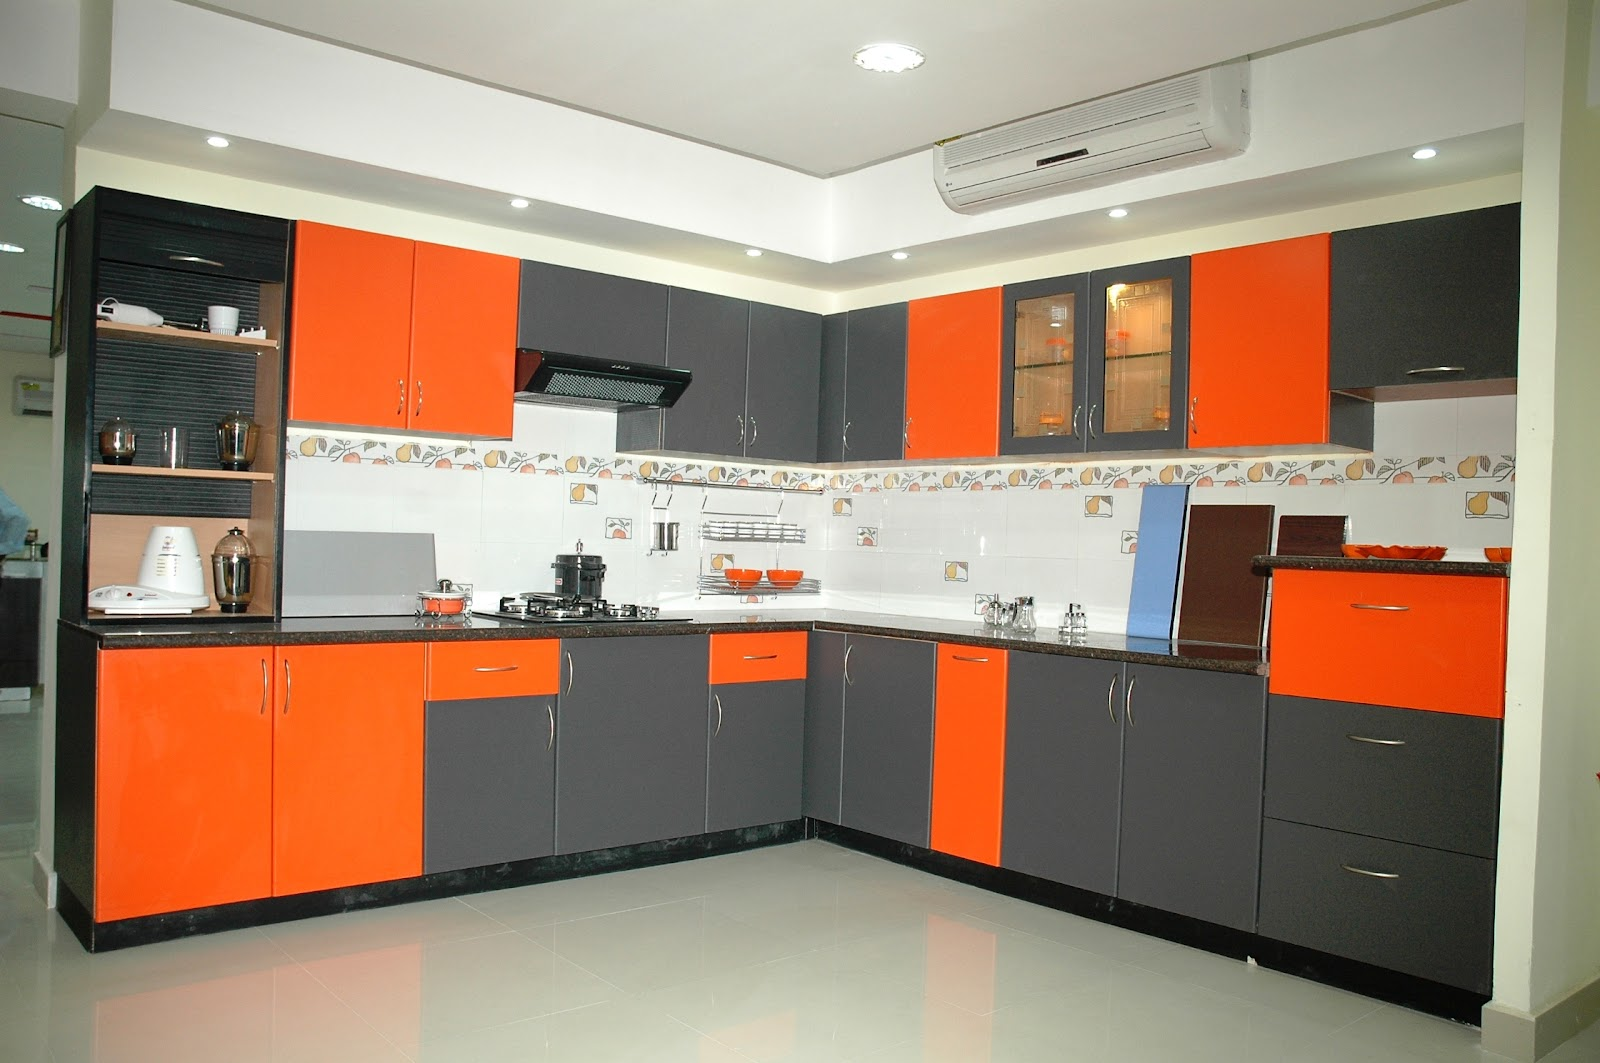 Chennai kitchen modular interiors chennai kitchen for Modular kitchen shelves designs